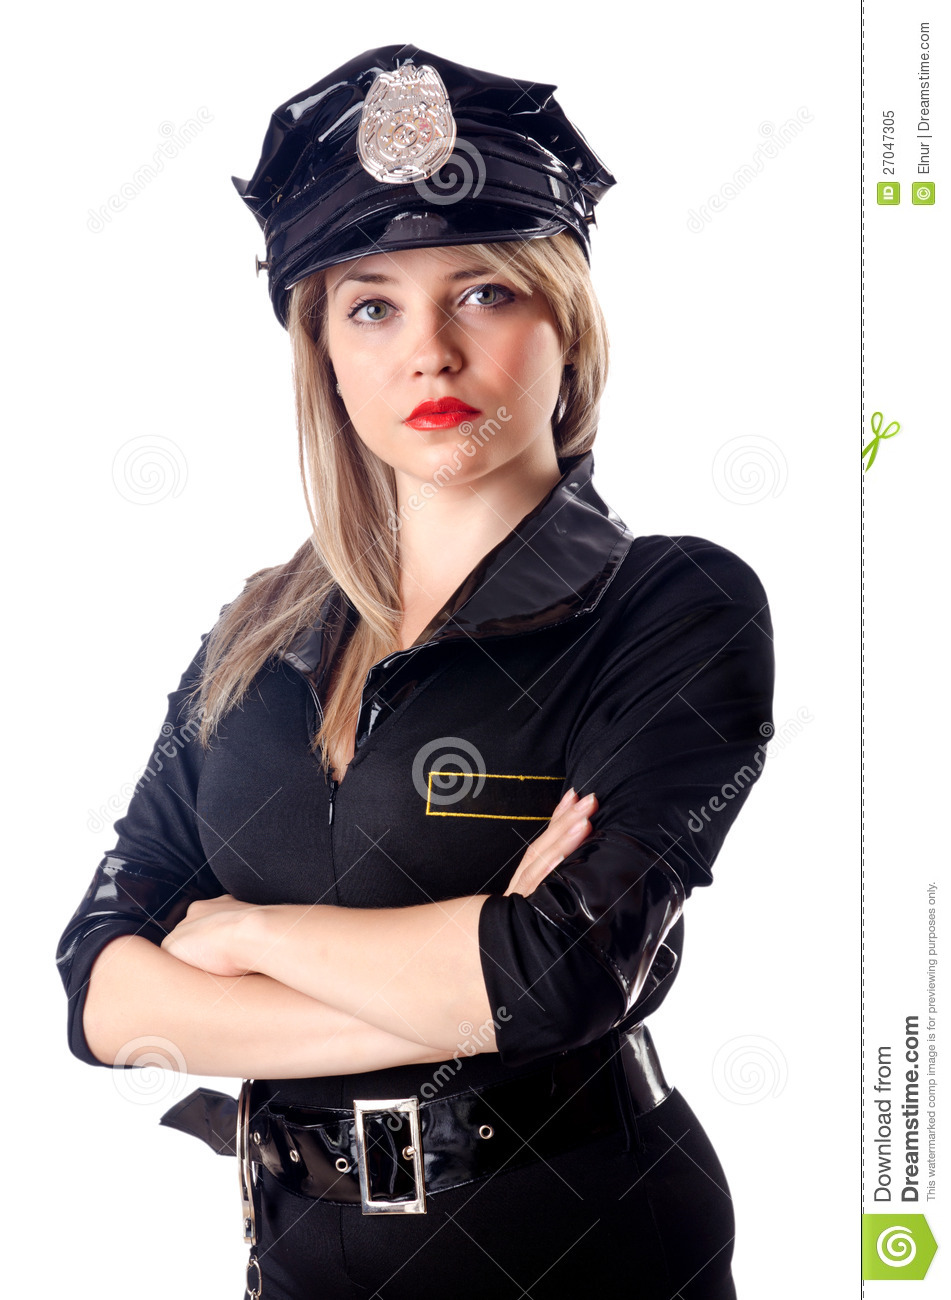 Police women fetish